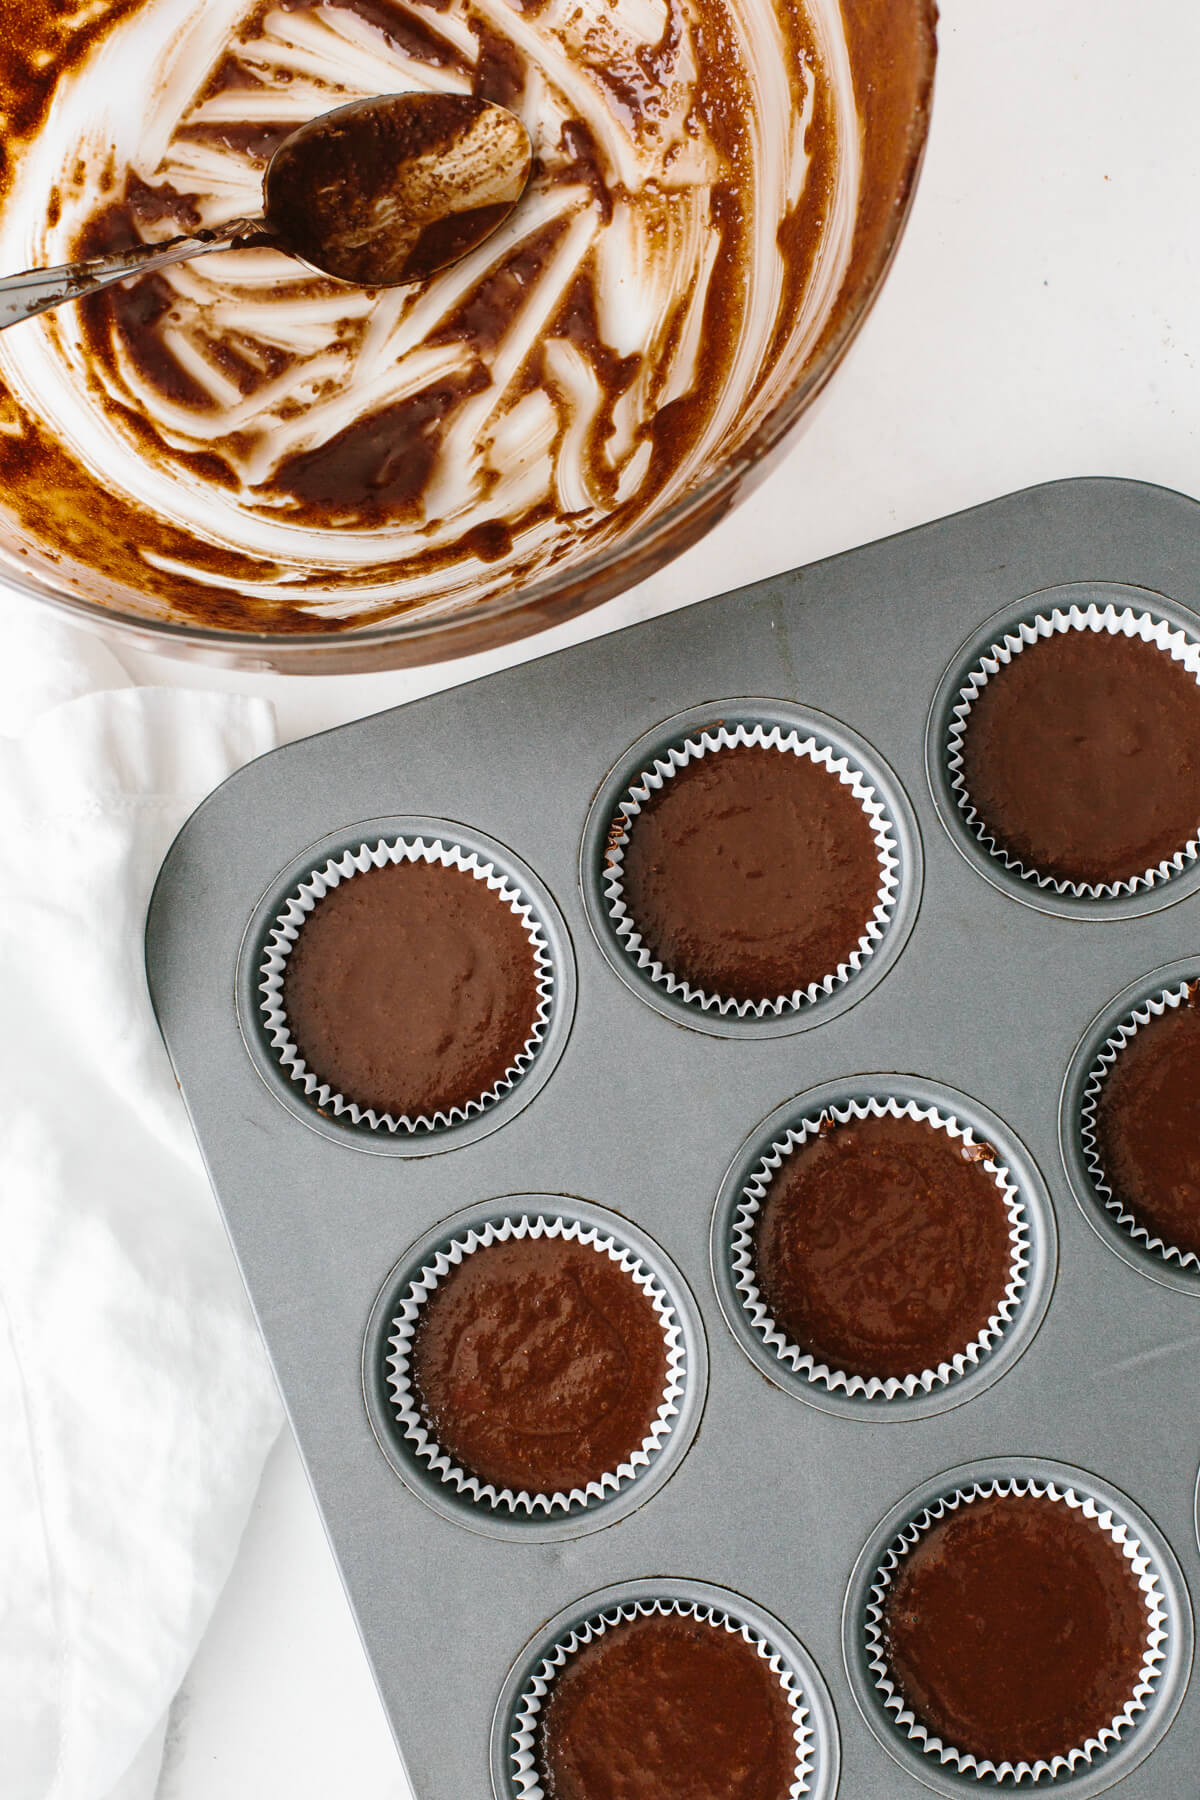 Filling the cupcake pan with chocolate batter.